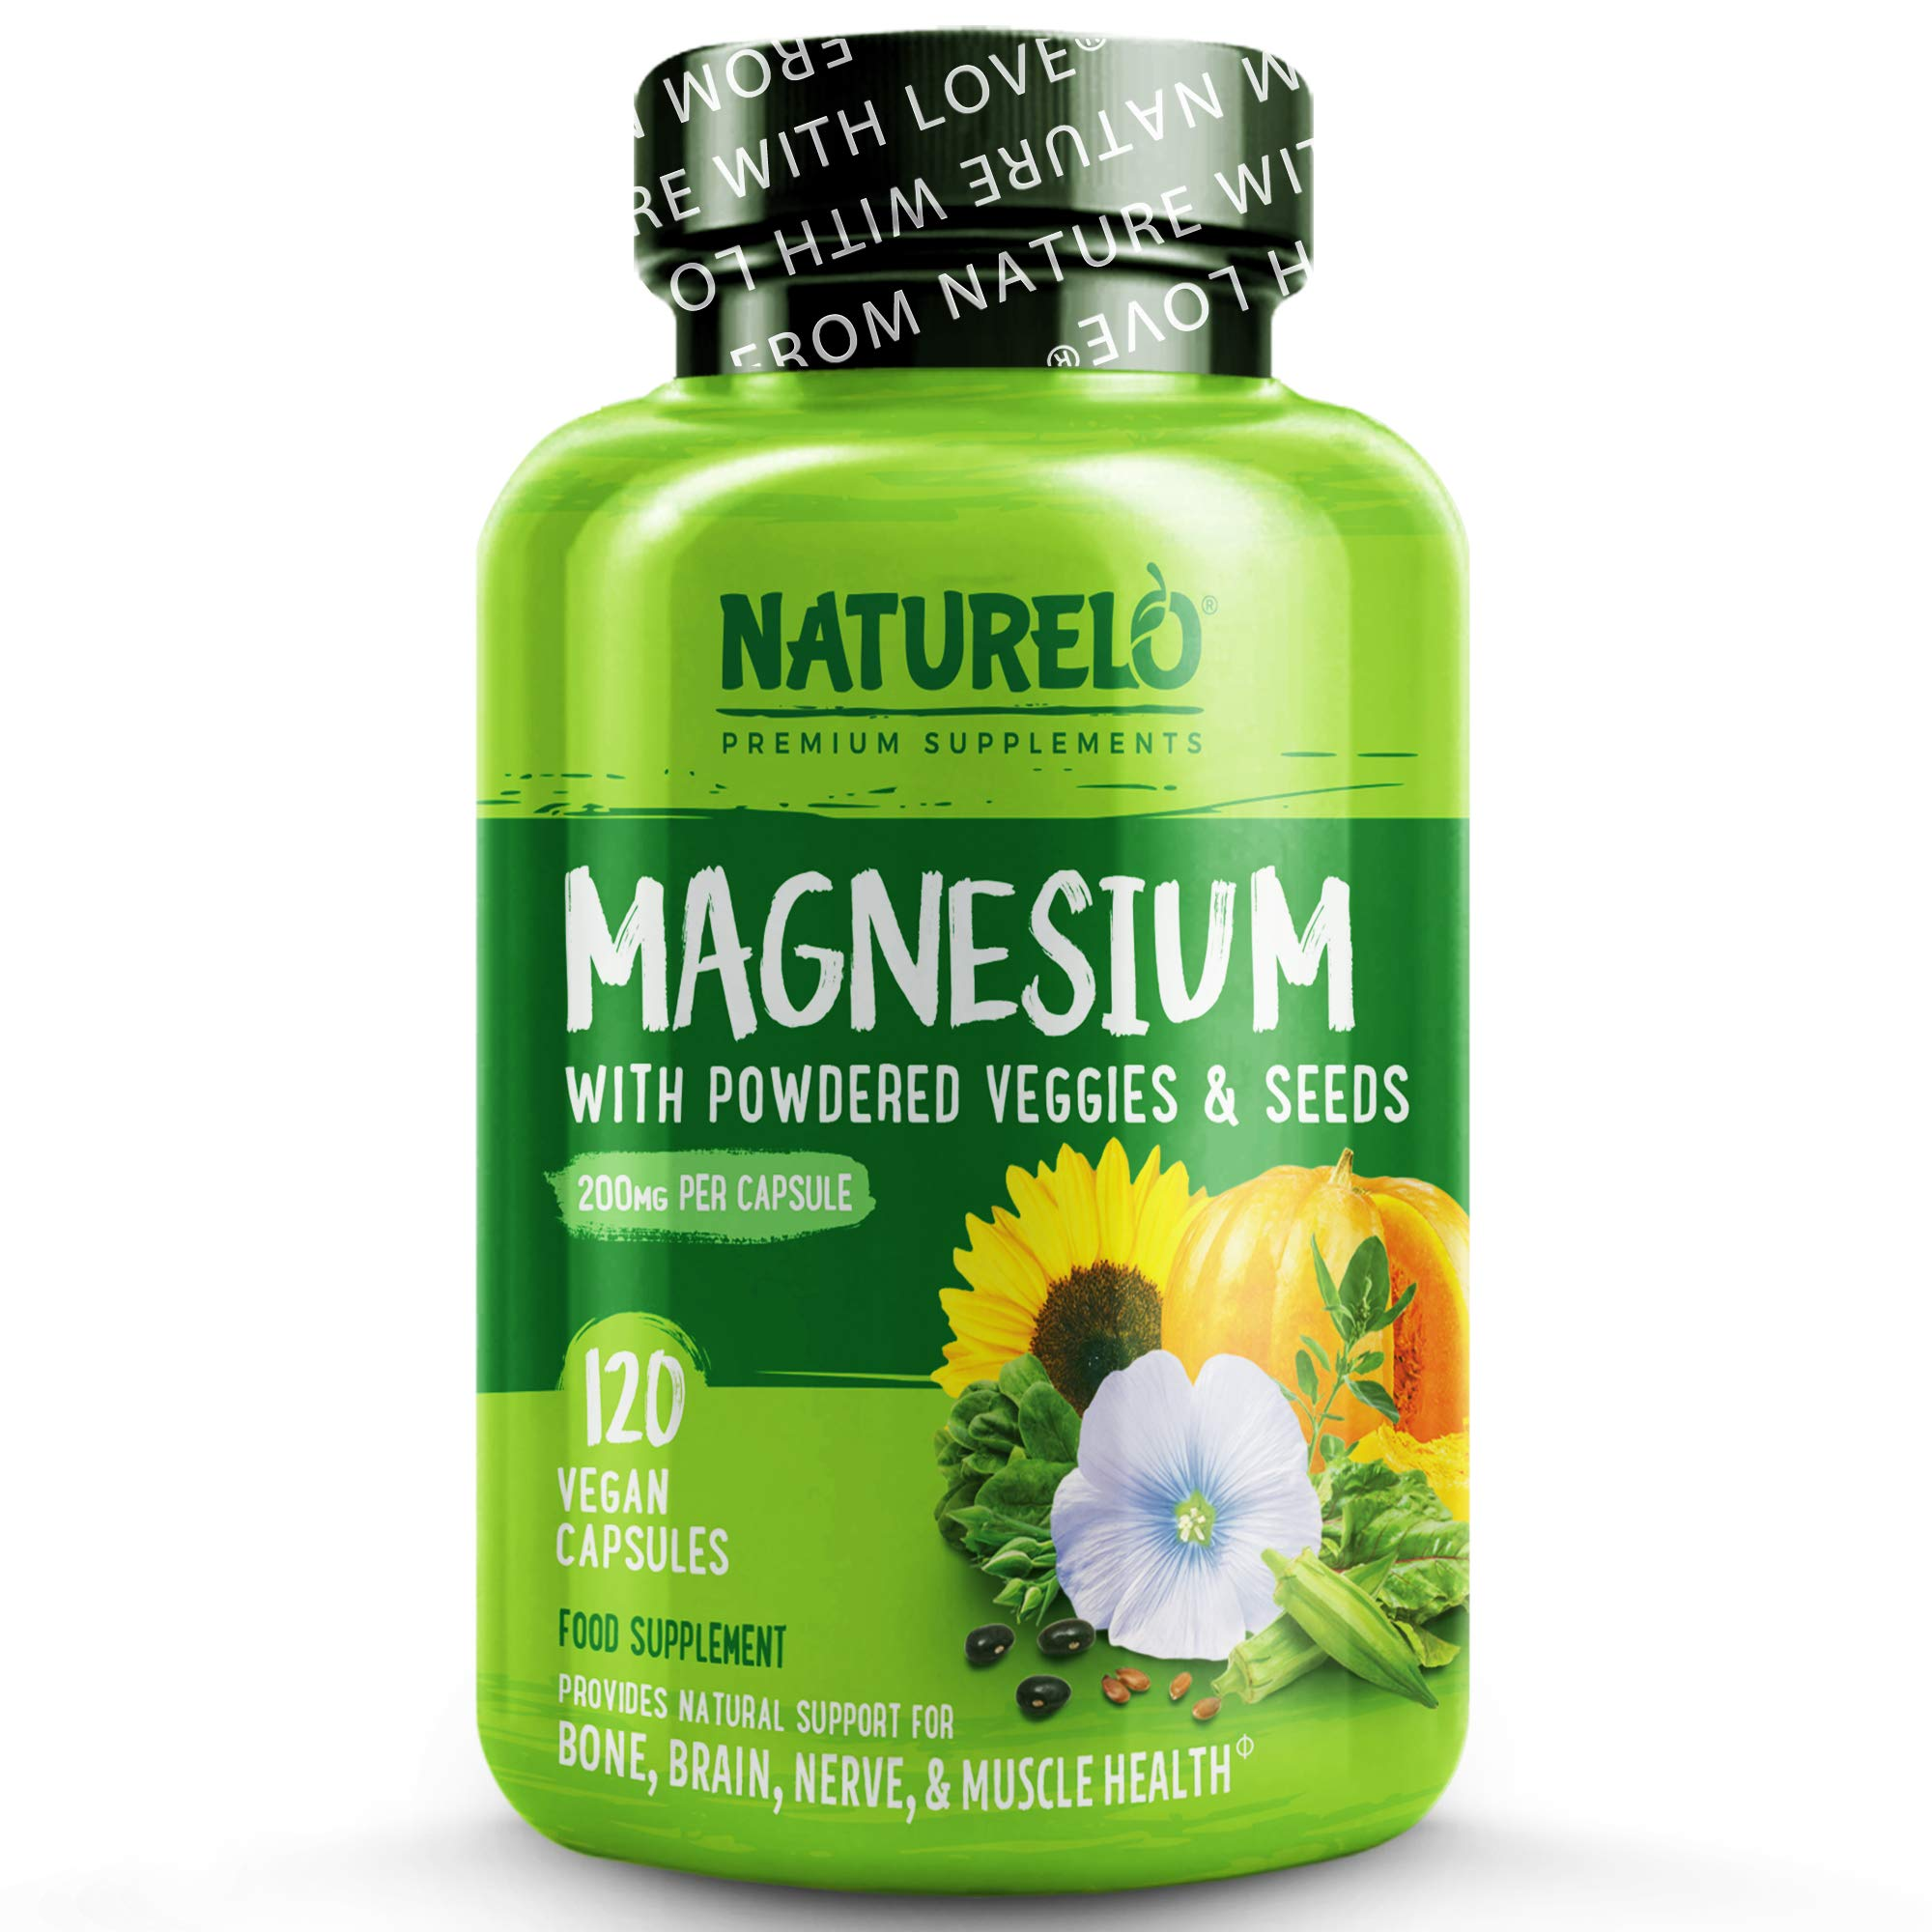 NATURELO Magnesium - 200 mg Natural Glycinate & Magnesium-Rich Vegetable Blend - Best Glycinate Supplement for Energy, Nerves & Mental Balance - Gluten&GMO Free - 120 Vegan Capsules | 4 Month Supply